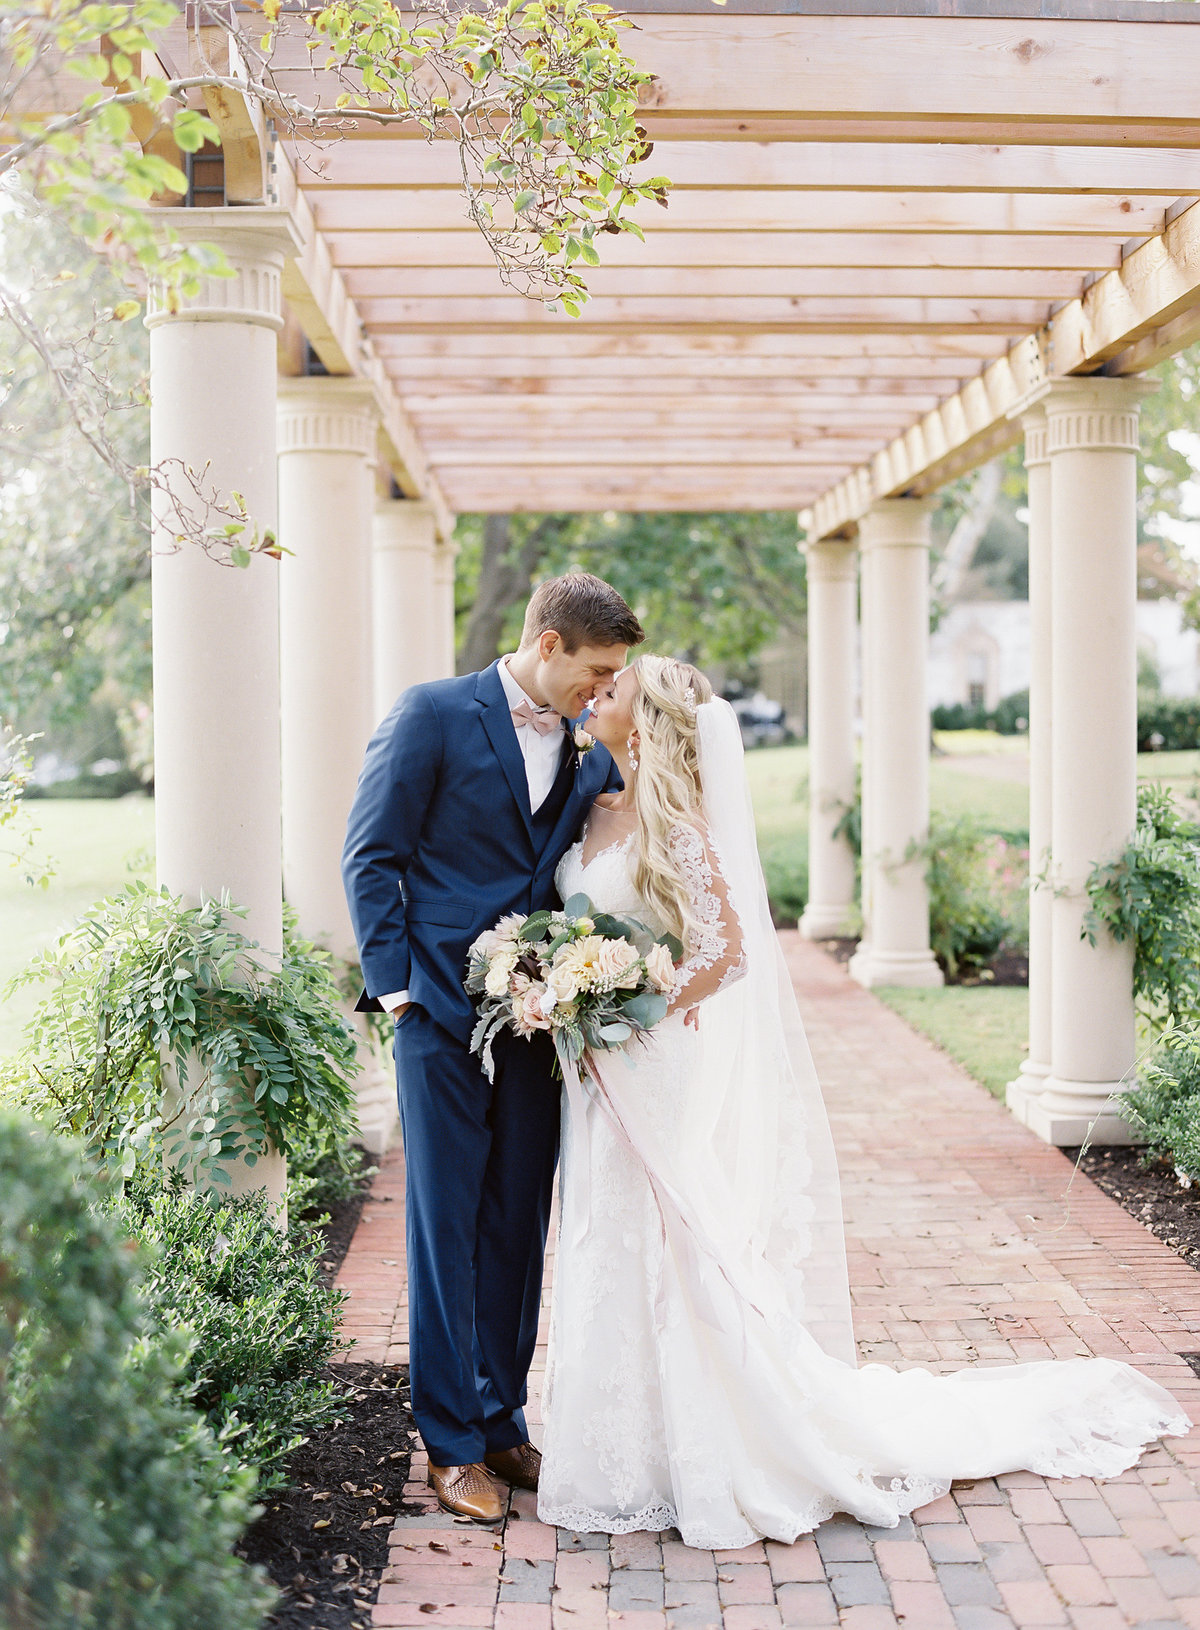 Vicki_Grafton_Photography_Wedding-274